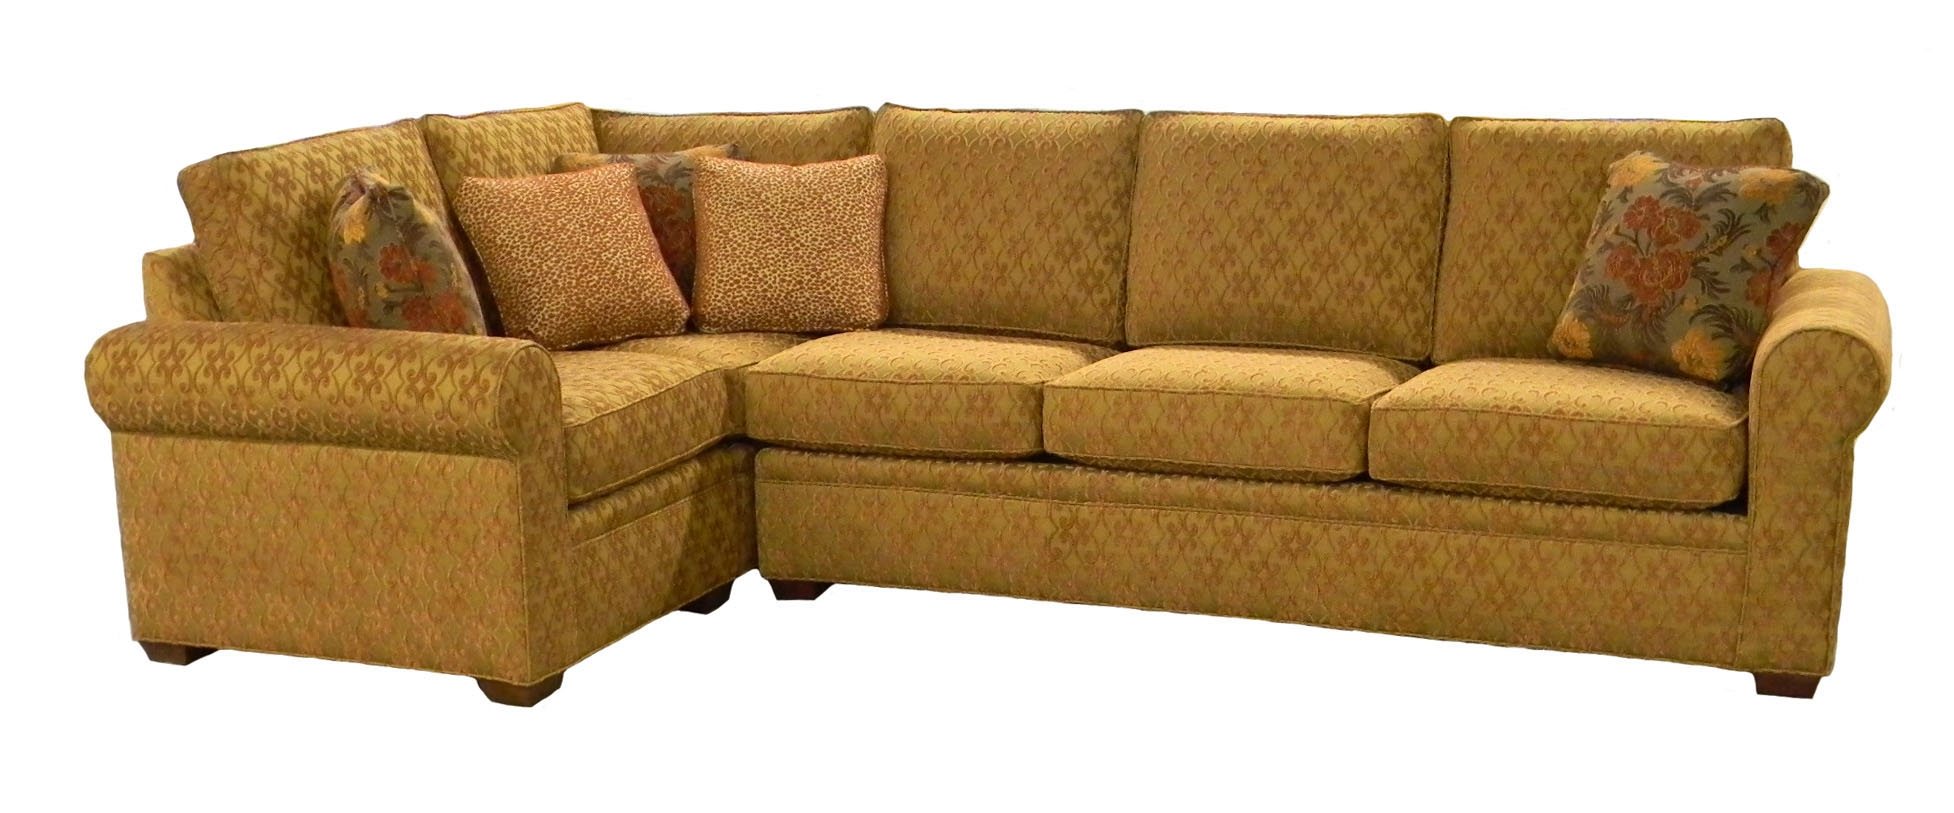 Photos Examples Custom Sectional Sofas Carolina Chair Furniture Throughout Compact Sectional Sofas (#8 of 12)